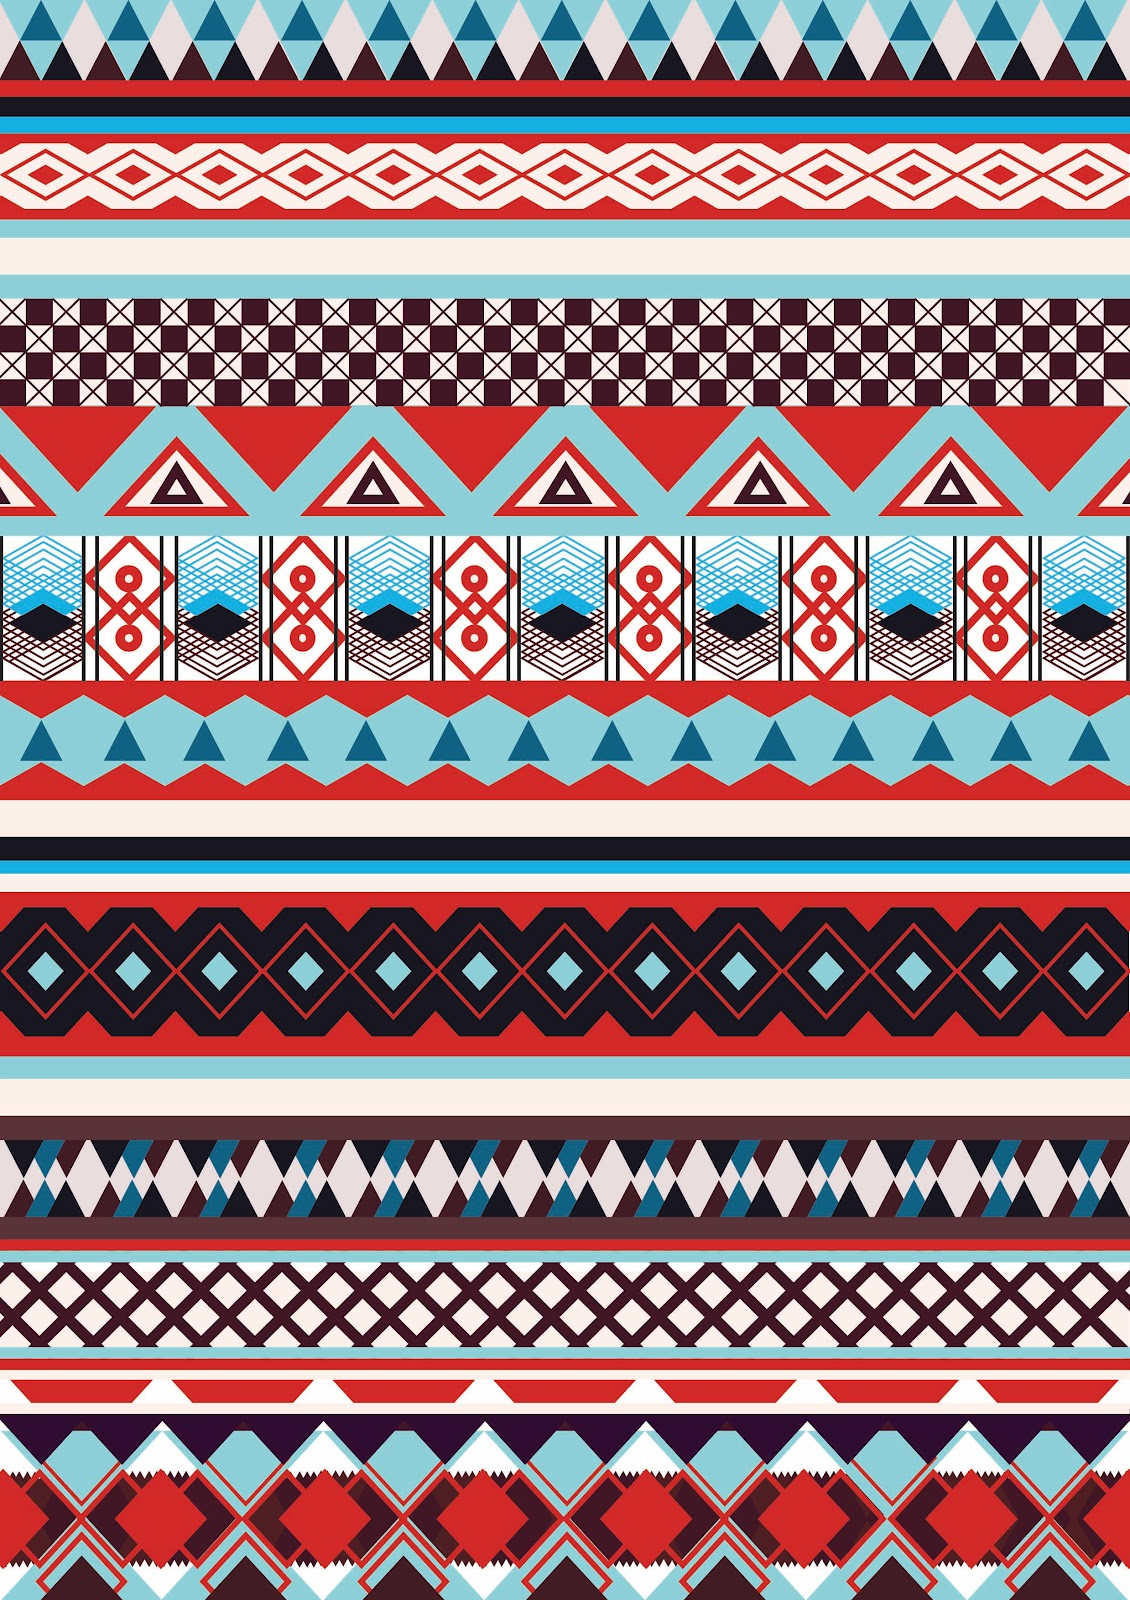 Tribal patterns tumblr - photo#17